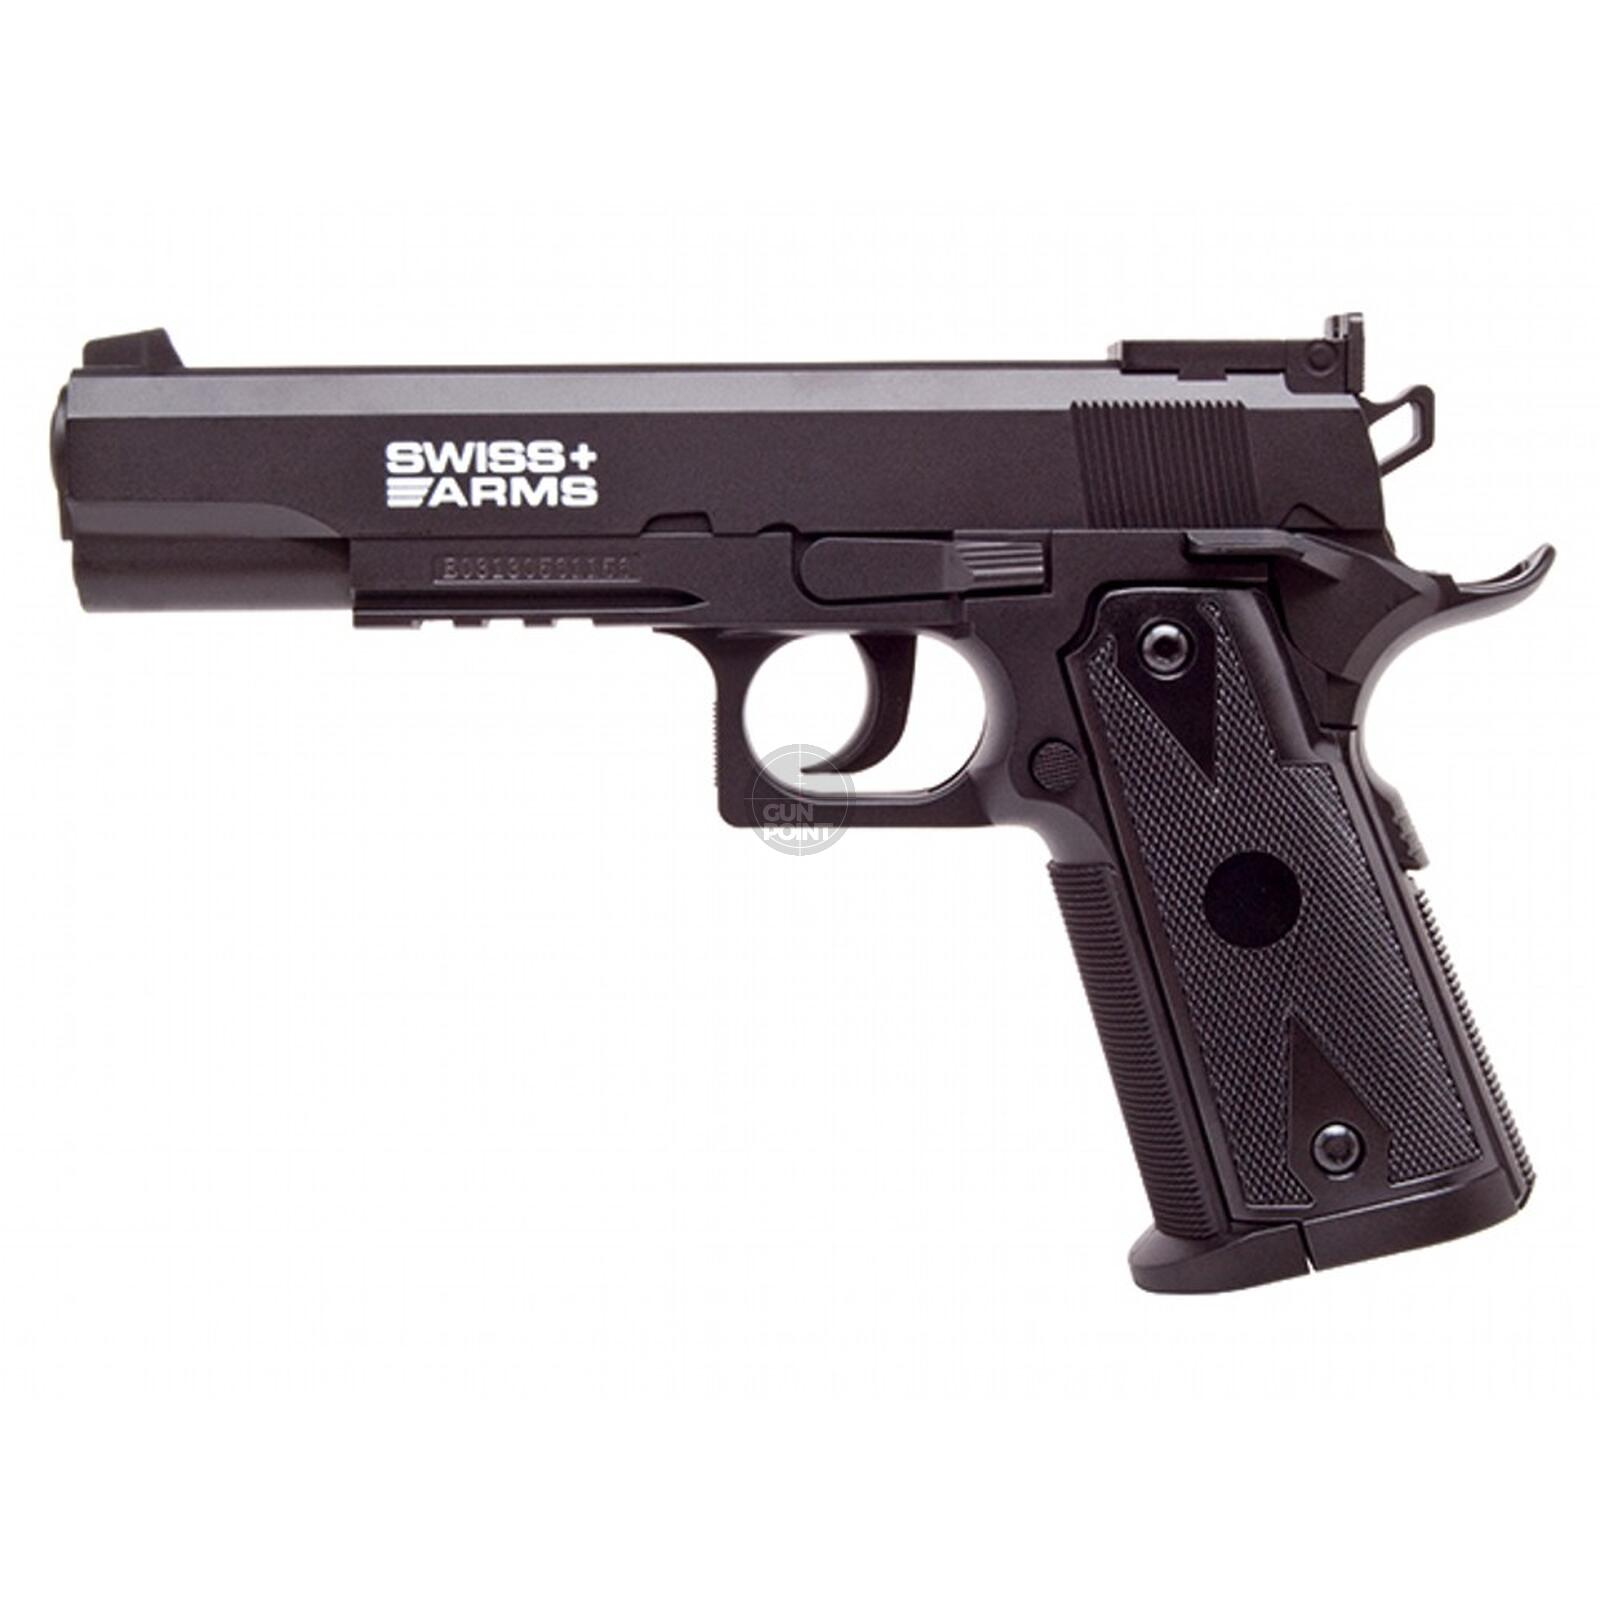 Luftpistole - Swiss Arms - P1911 Match - Co2-System NBB - Kal. 4,5 mm